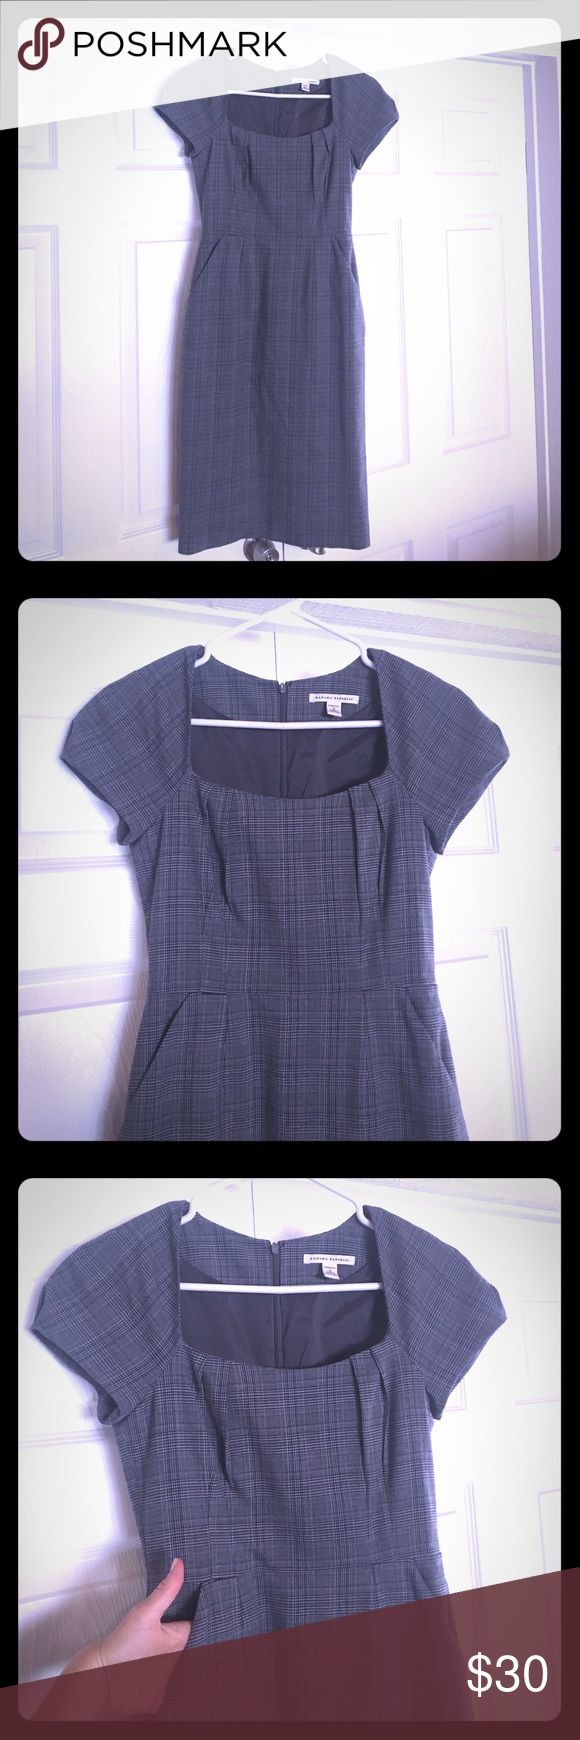 Comfortable and flattering work dress Excellent condition Gray and black plaid lined pencil dress with just a hint of blue. I am so disappointed that this dress does not fit me anymore! It's flattering to the curves and has enough stretch to be absolutely comfortable and forgiving. Has pockets! Banana Republic Dresses